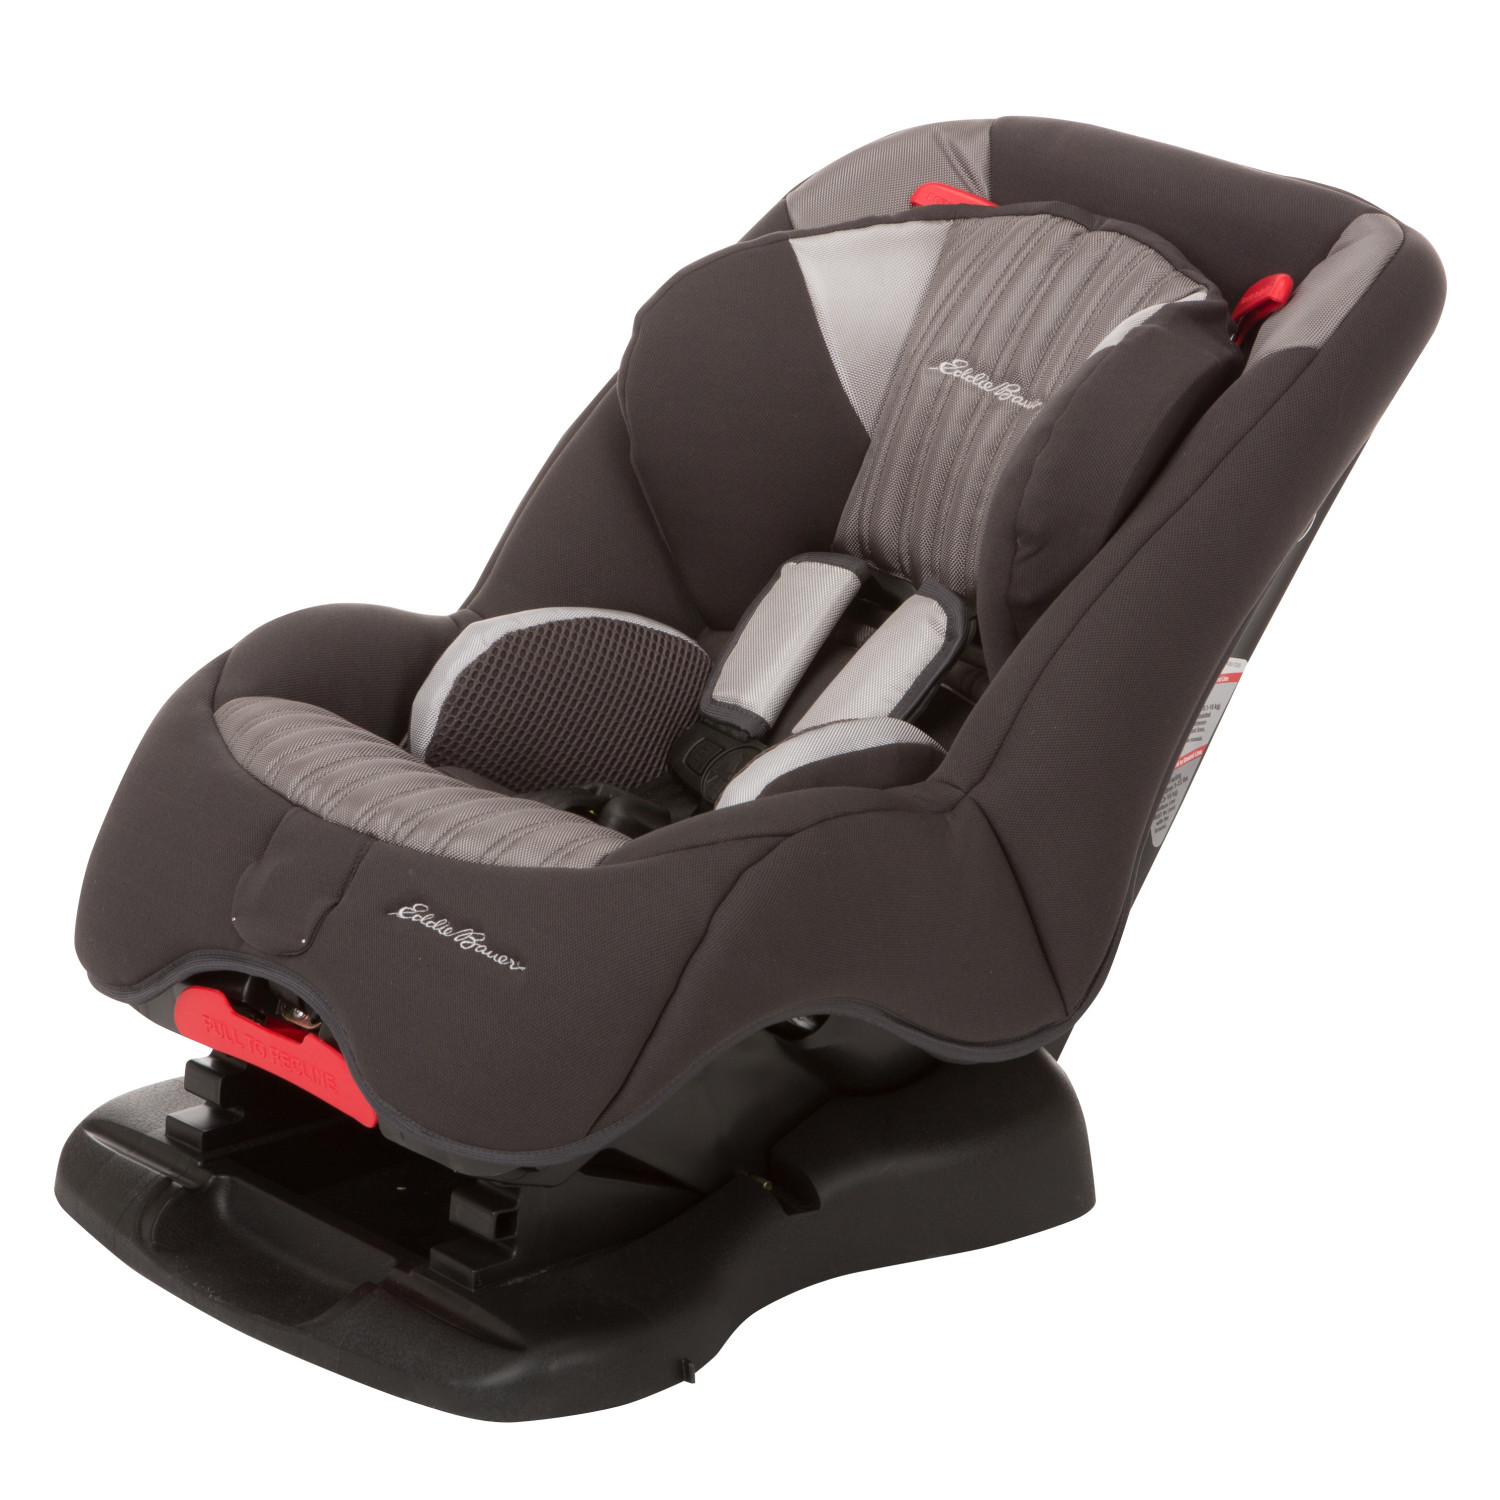 eddie bauer deluxe 2 in 1 convertible car seat ebay. Black Bedroom Furniture Sets. Home Design Ideas